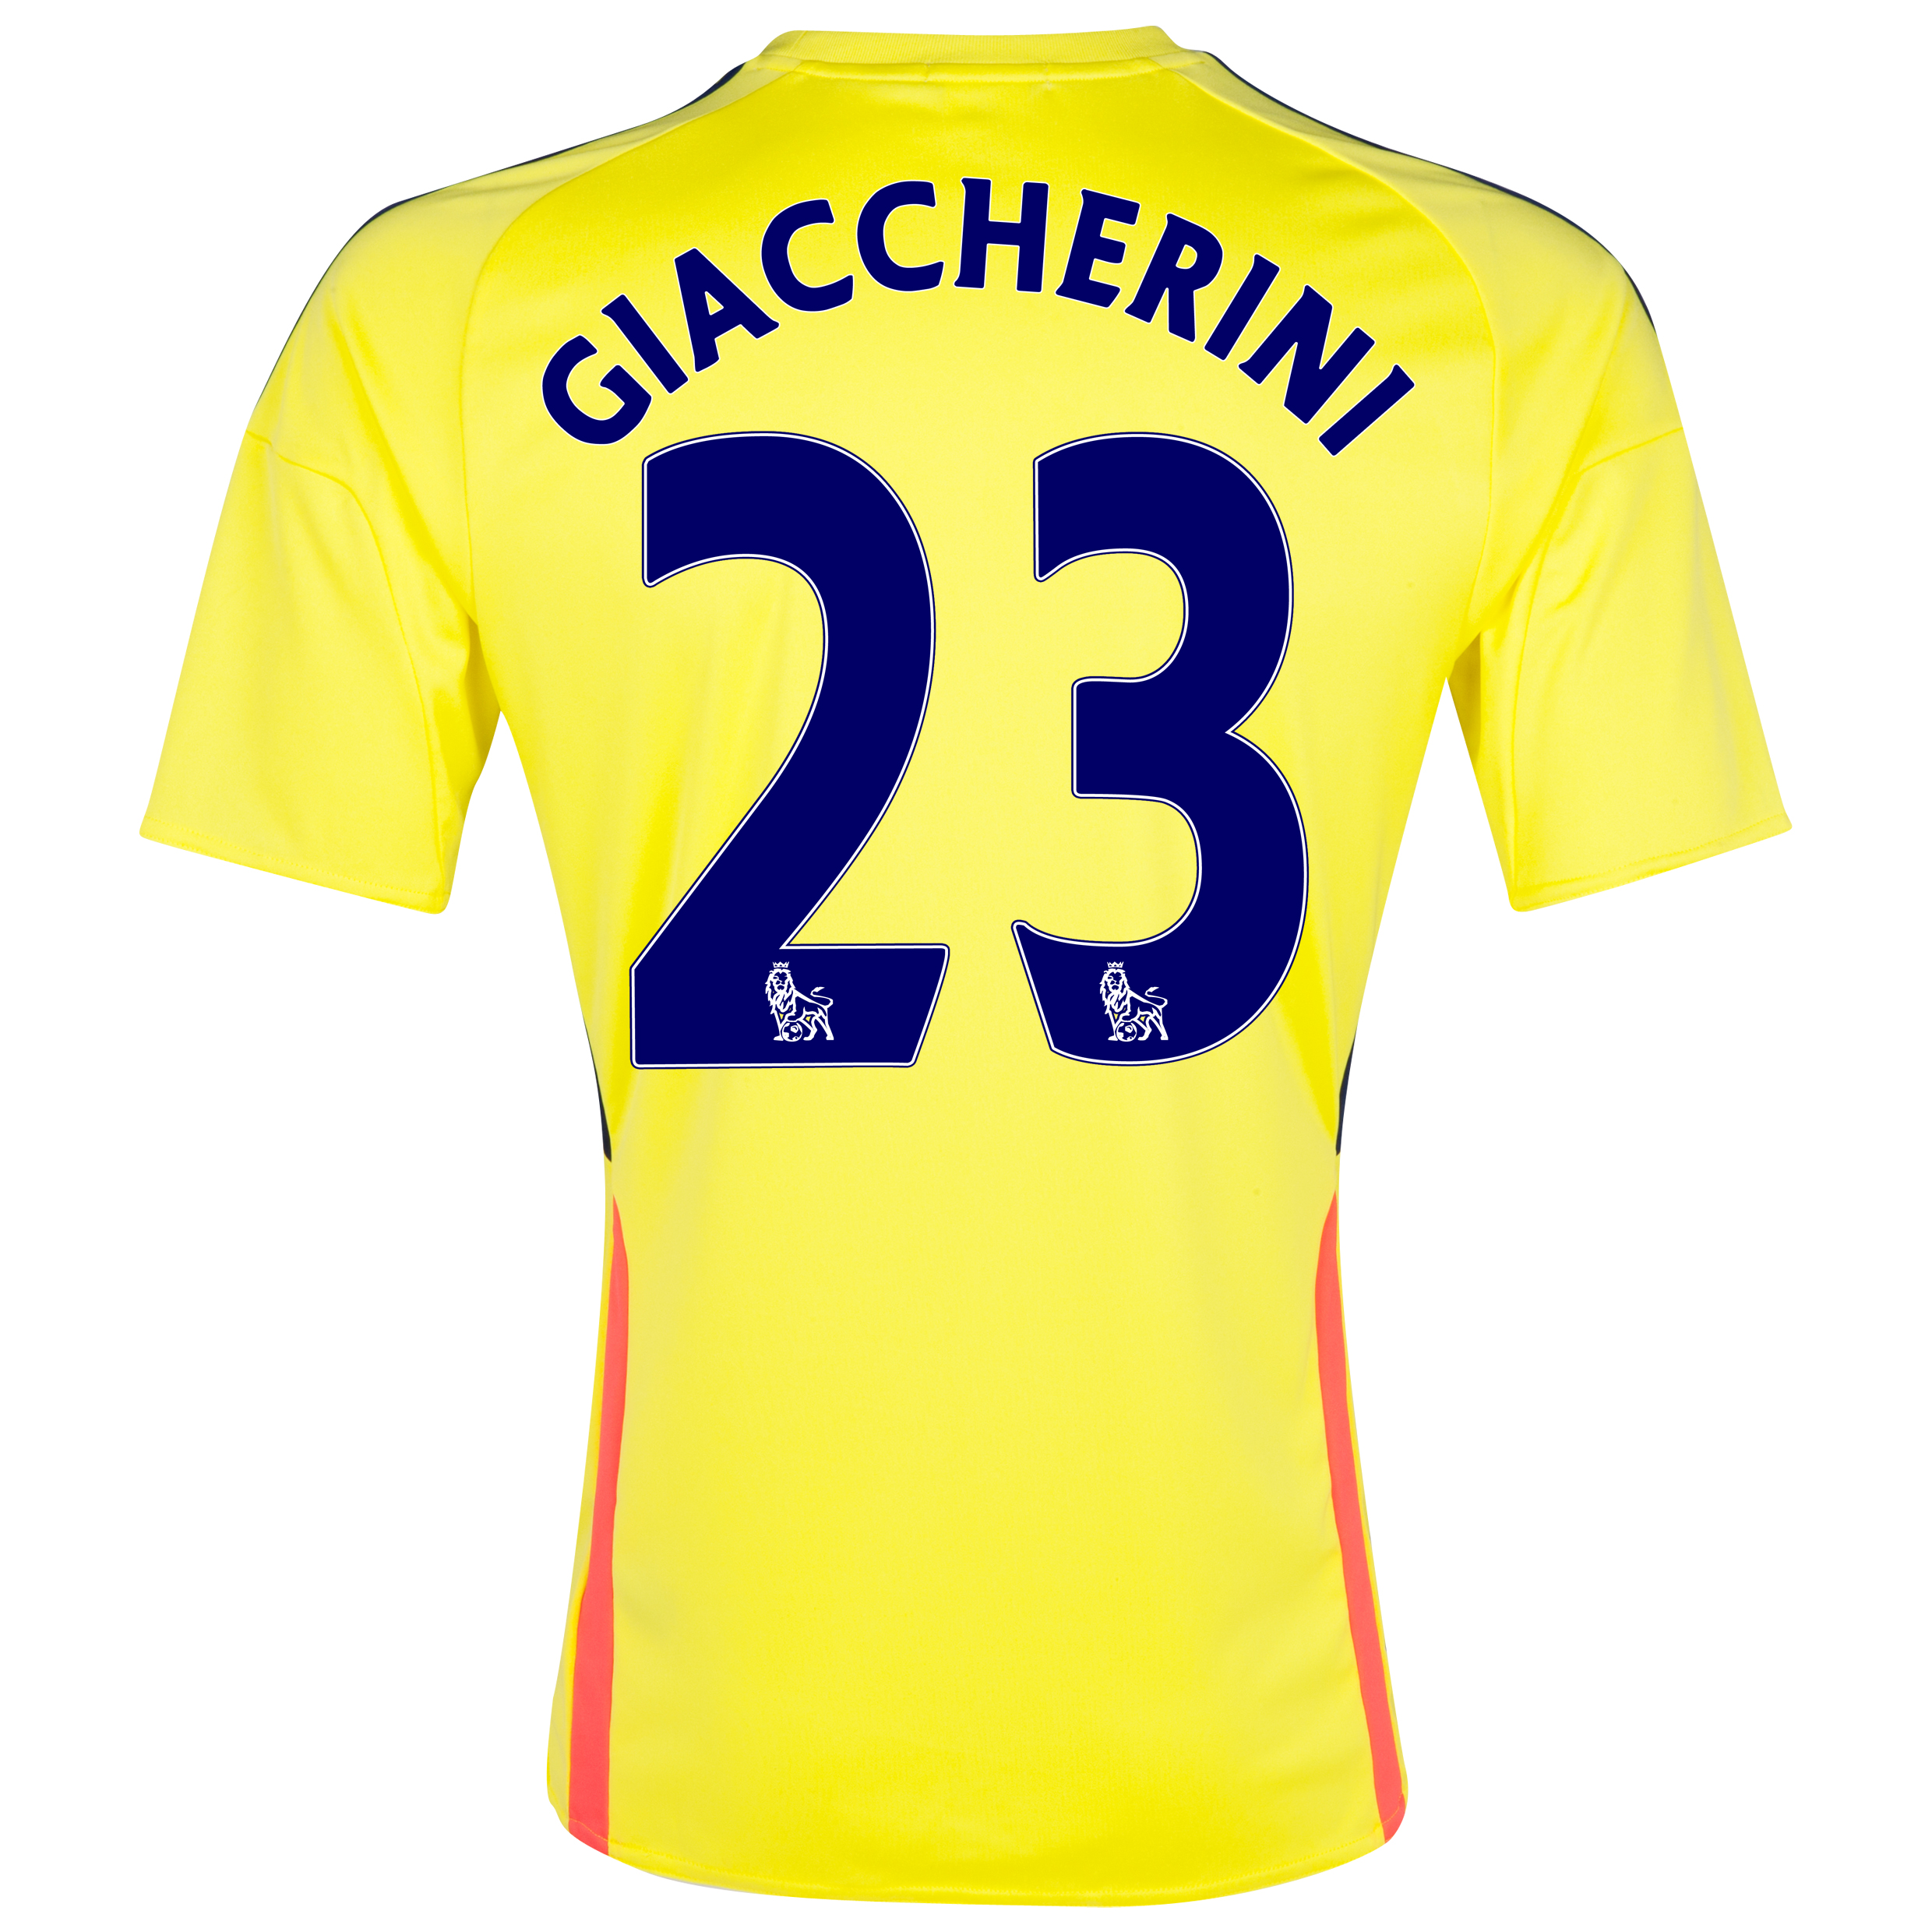 Sunderland Away Shirt 2013/14 with Giaccherini 23 printing